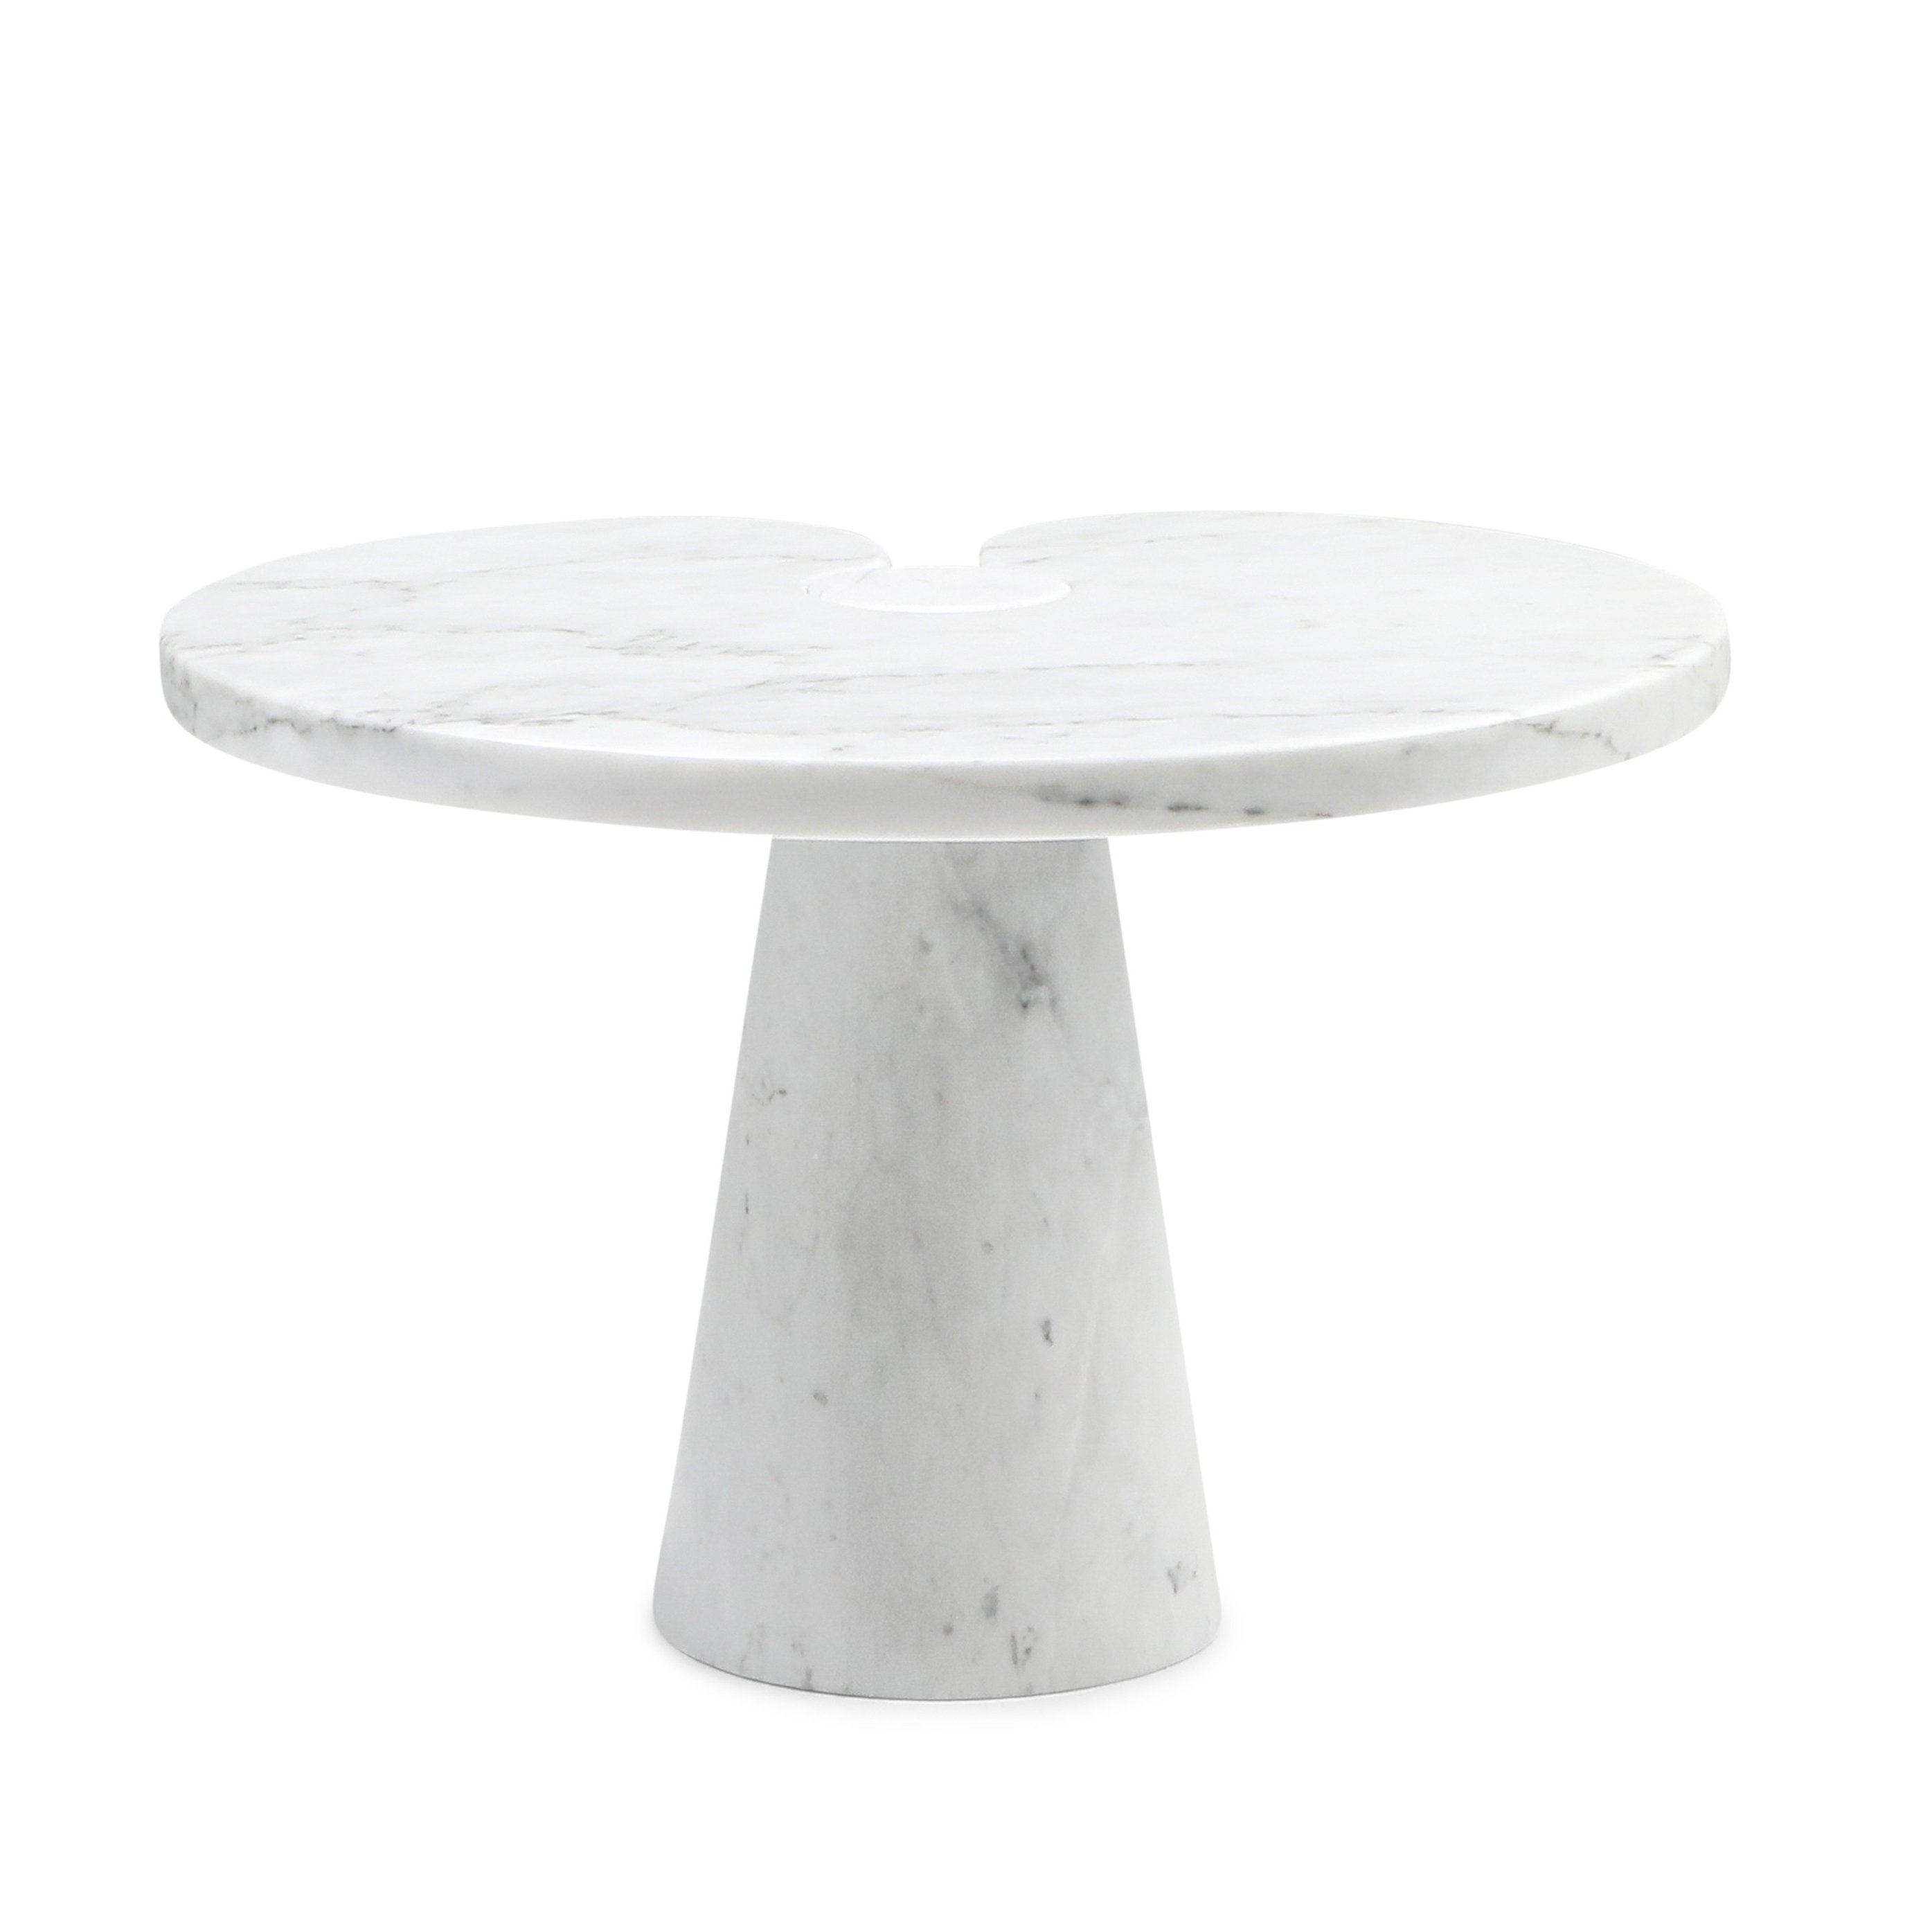 Eros White Carrara Marble Side Table By Angelo Mangiarotti For Skipper 1970s 116389